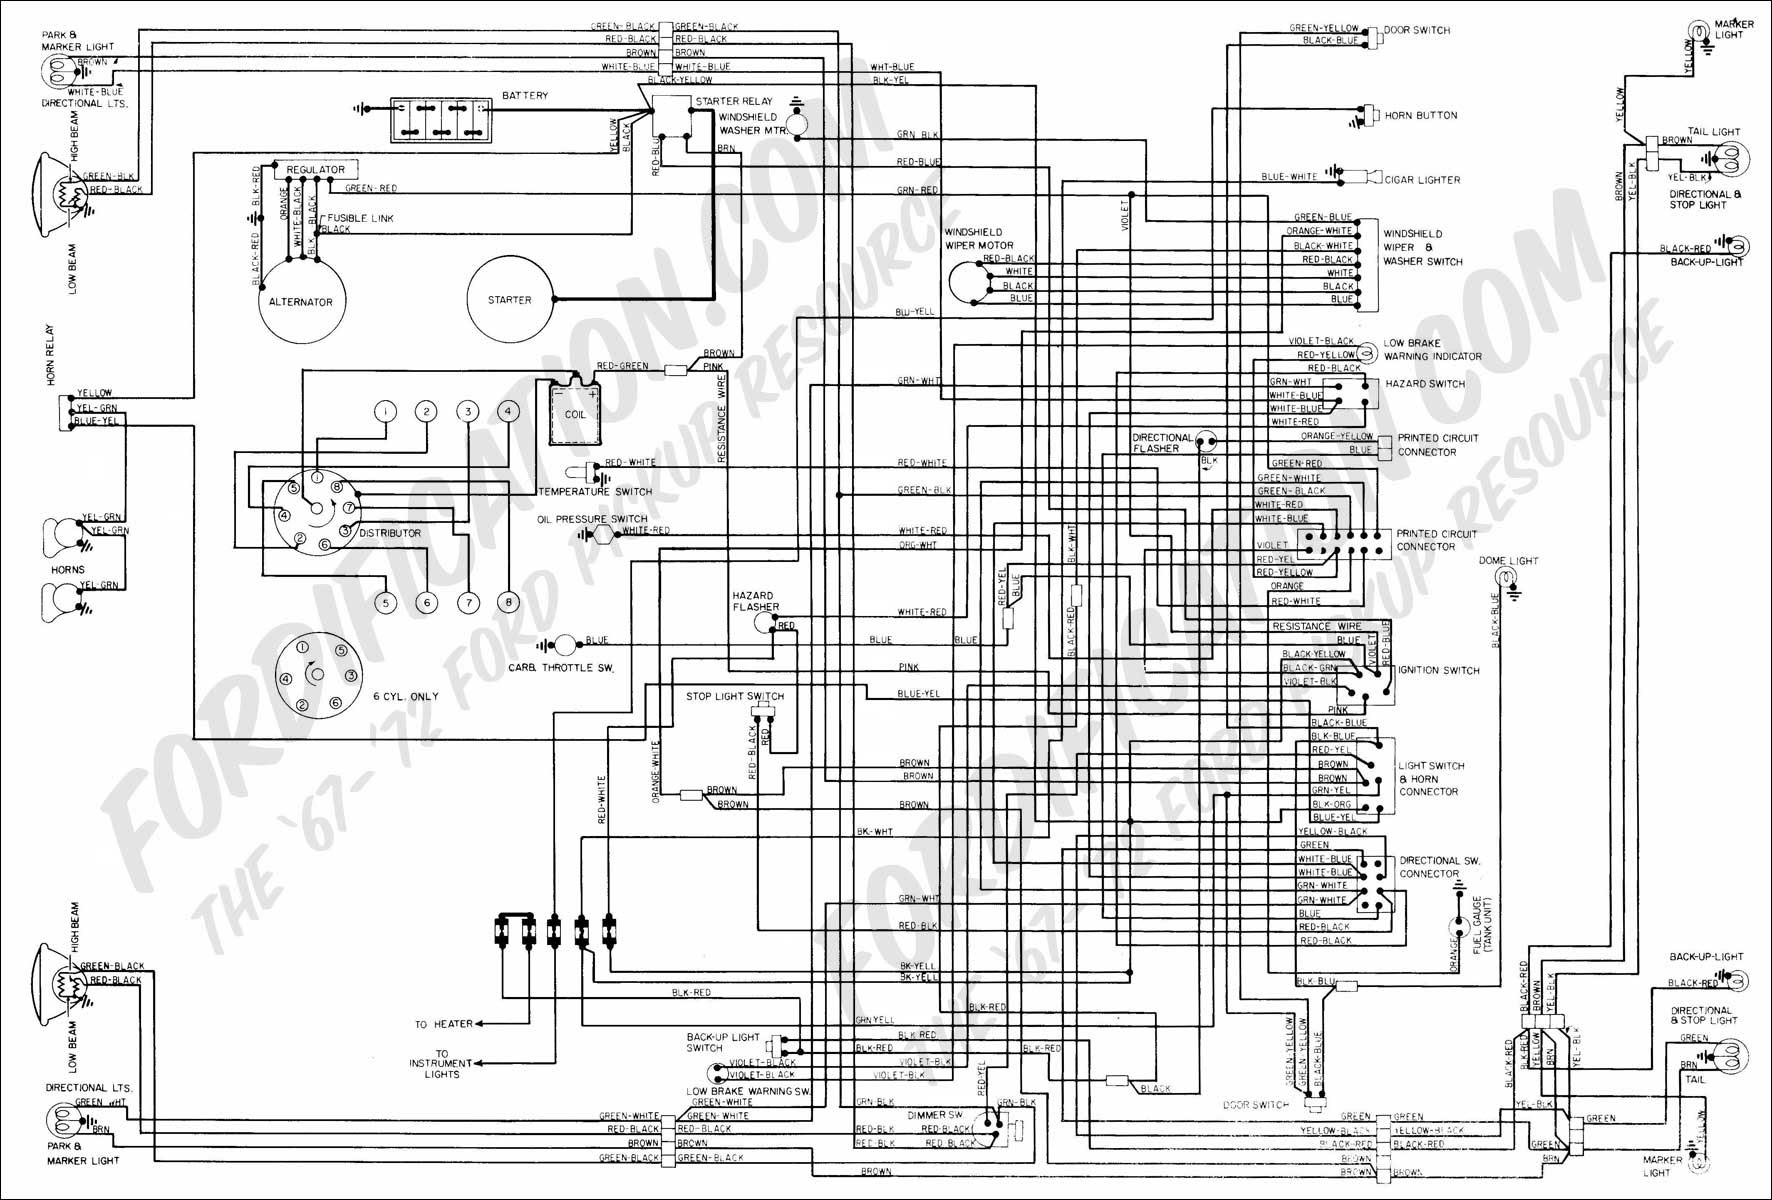 Wiring Diagrams For 2006 Ford Explorer Wiring Diagram Corsa Corsa Pasticceriagele It